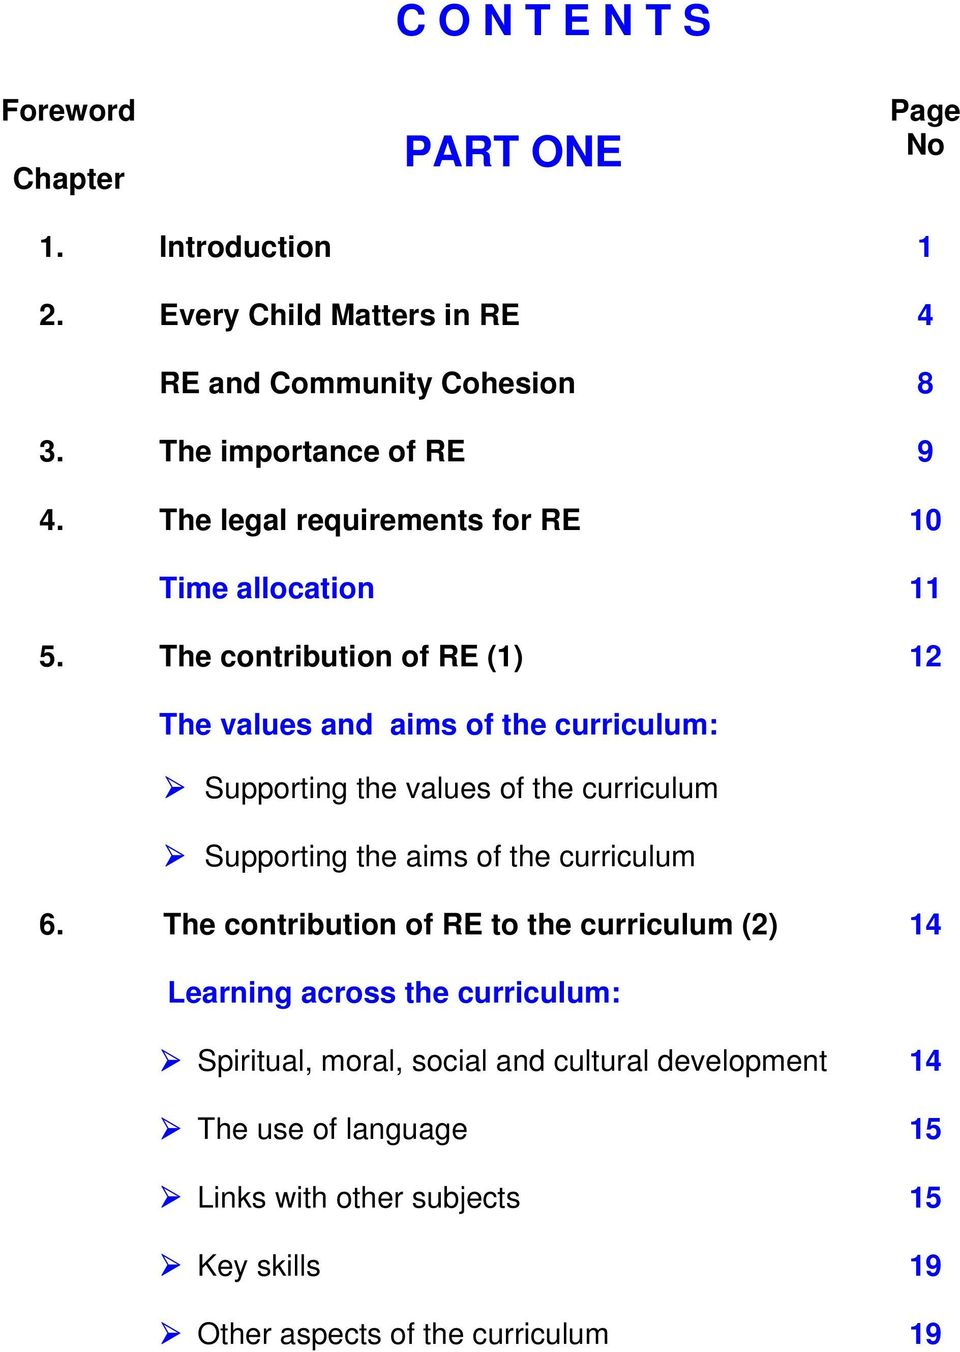 The contribution of RE (1) 10 11 12 The values and aims of the curriculum: Supporting the values of the curriculum Supporting the aims of the